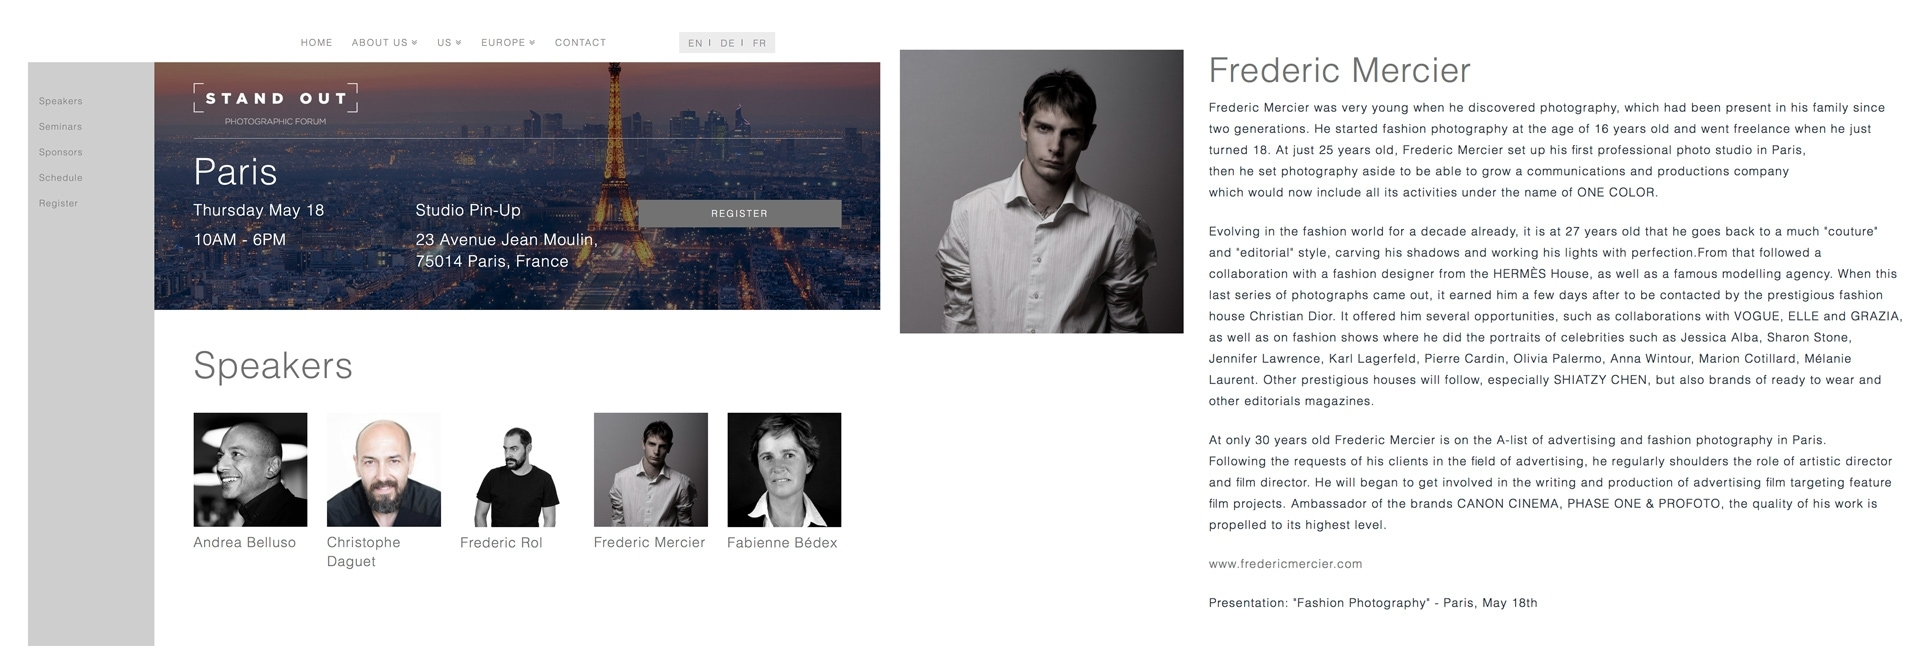 frederic mercier fashion photographer one color press exposition photography expo art stand out phase one profoto paris